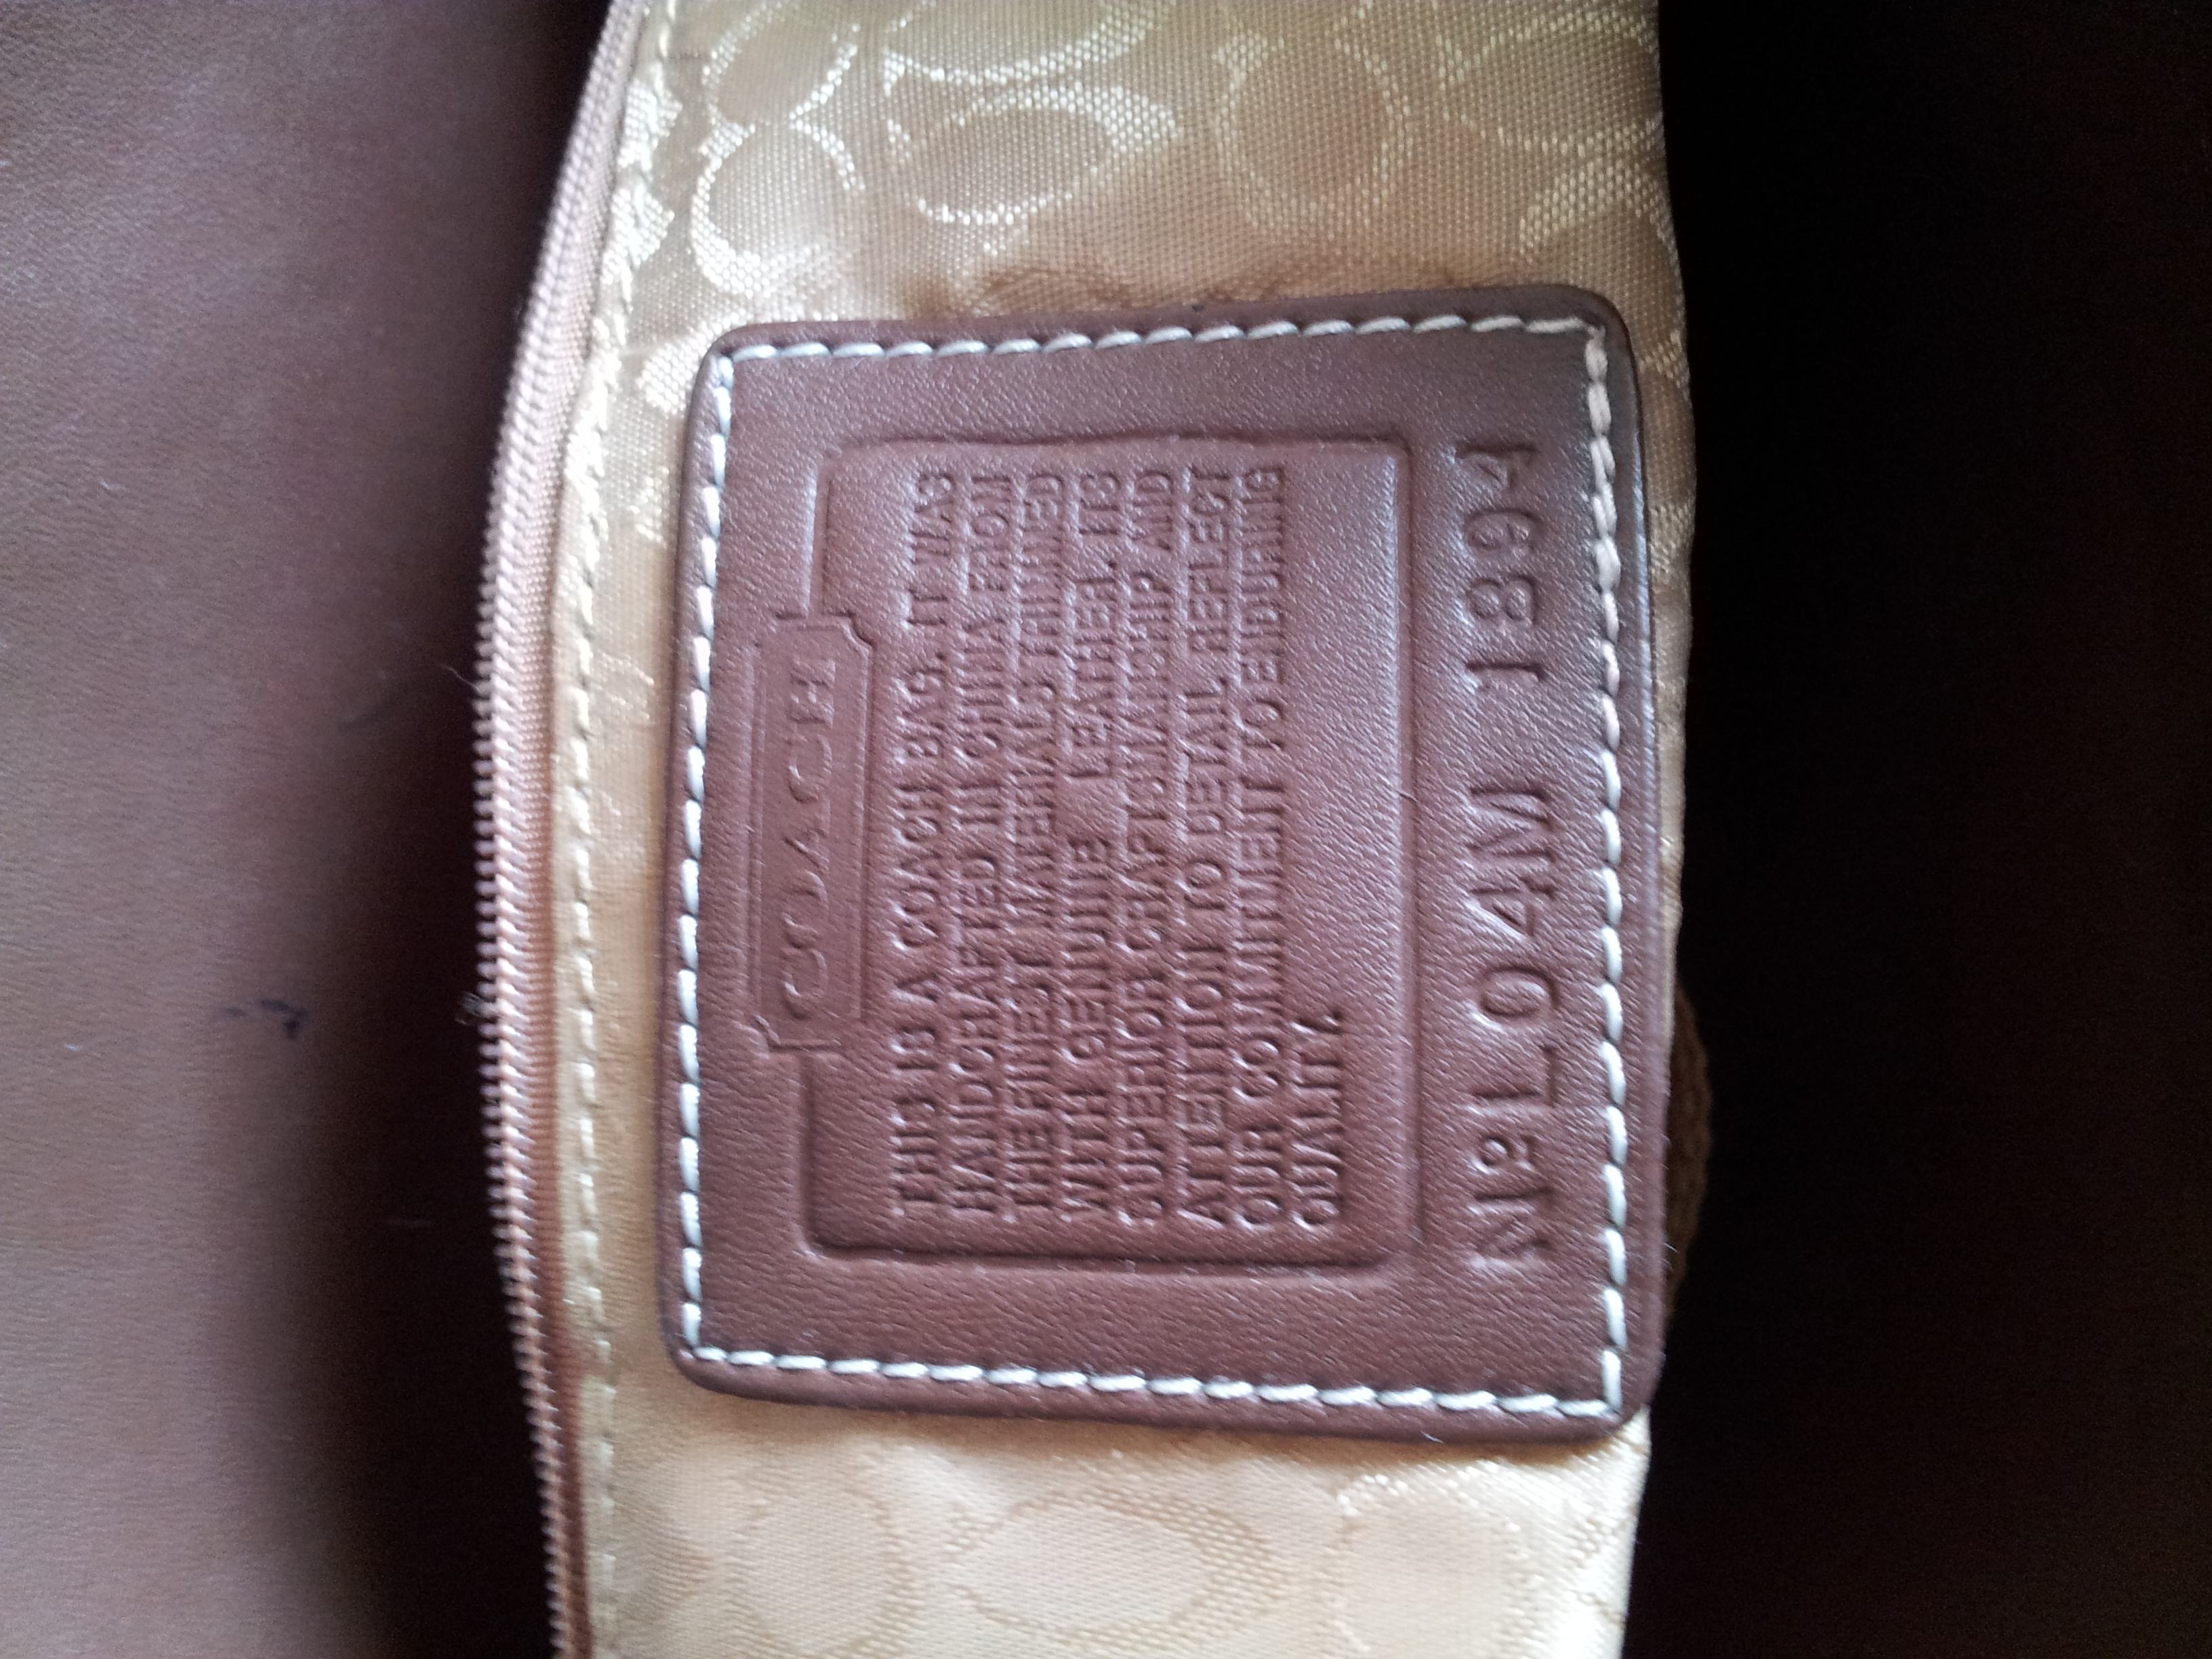 Search Coach Purse Serial Number Best Image Ccdbb